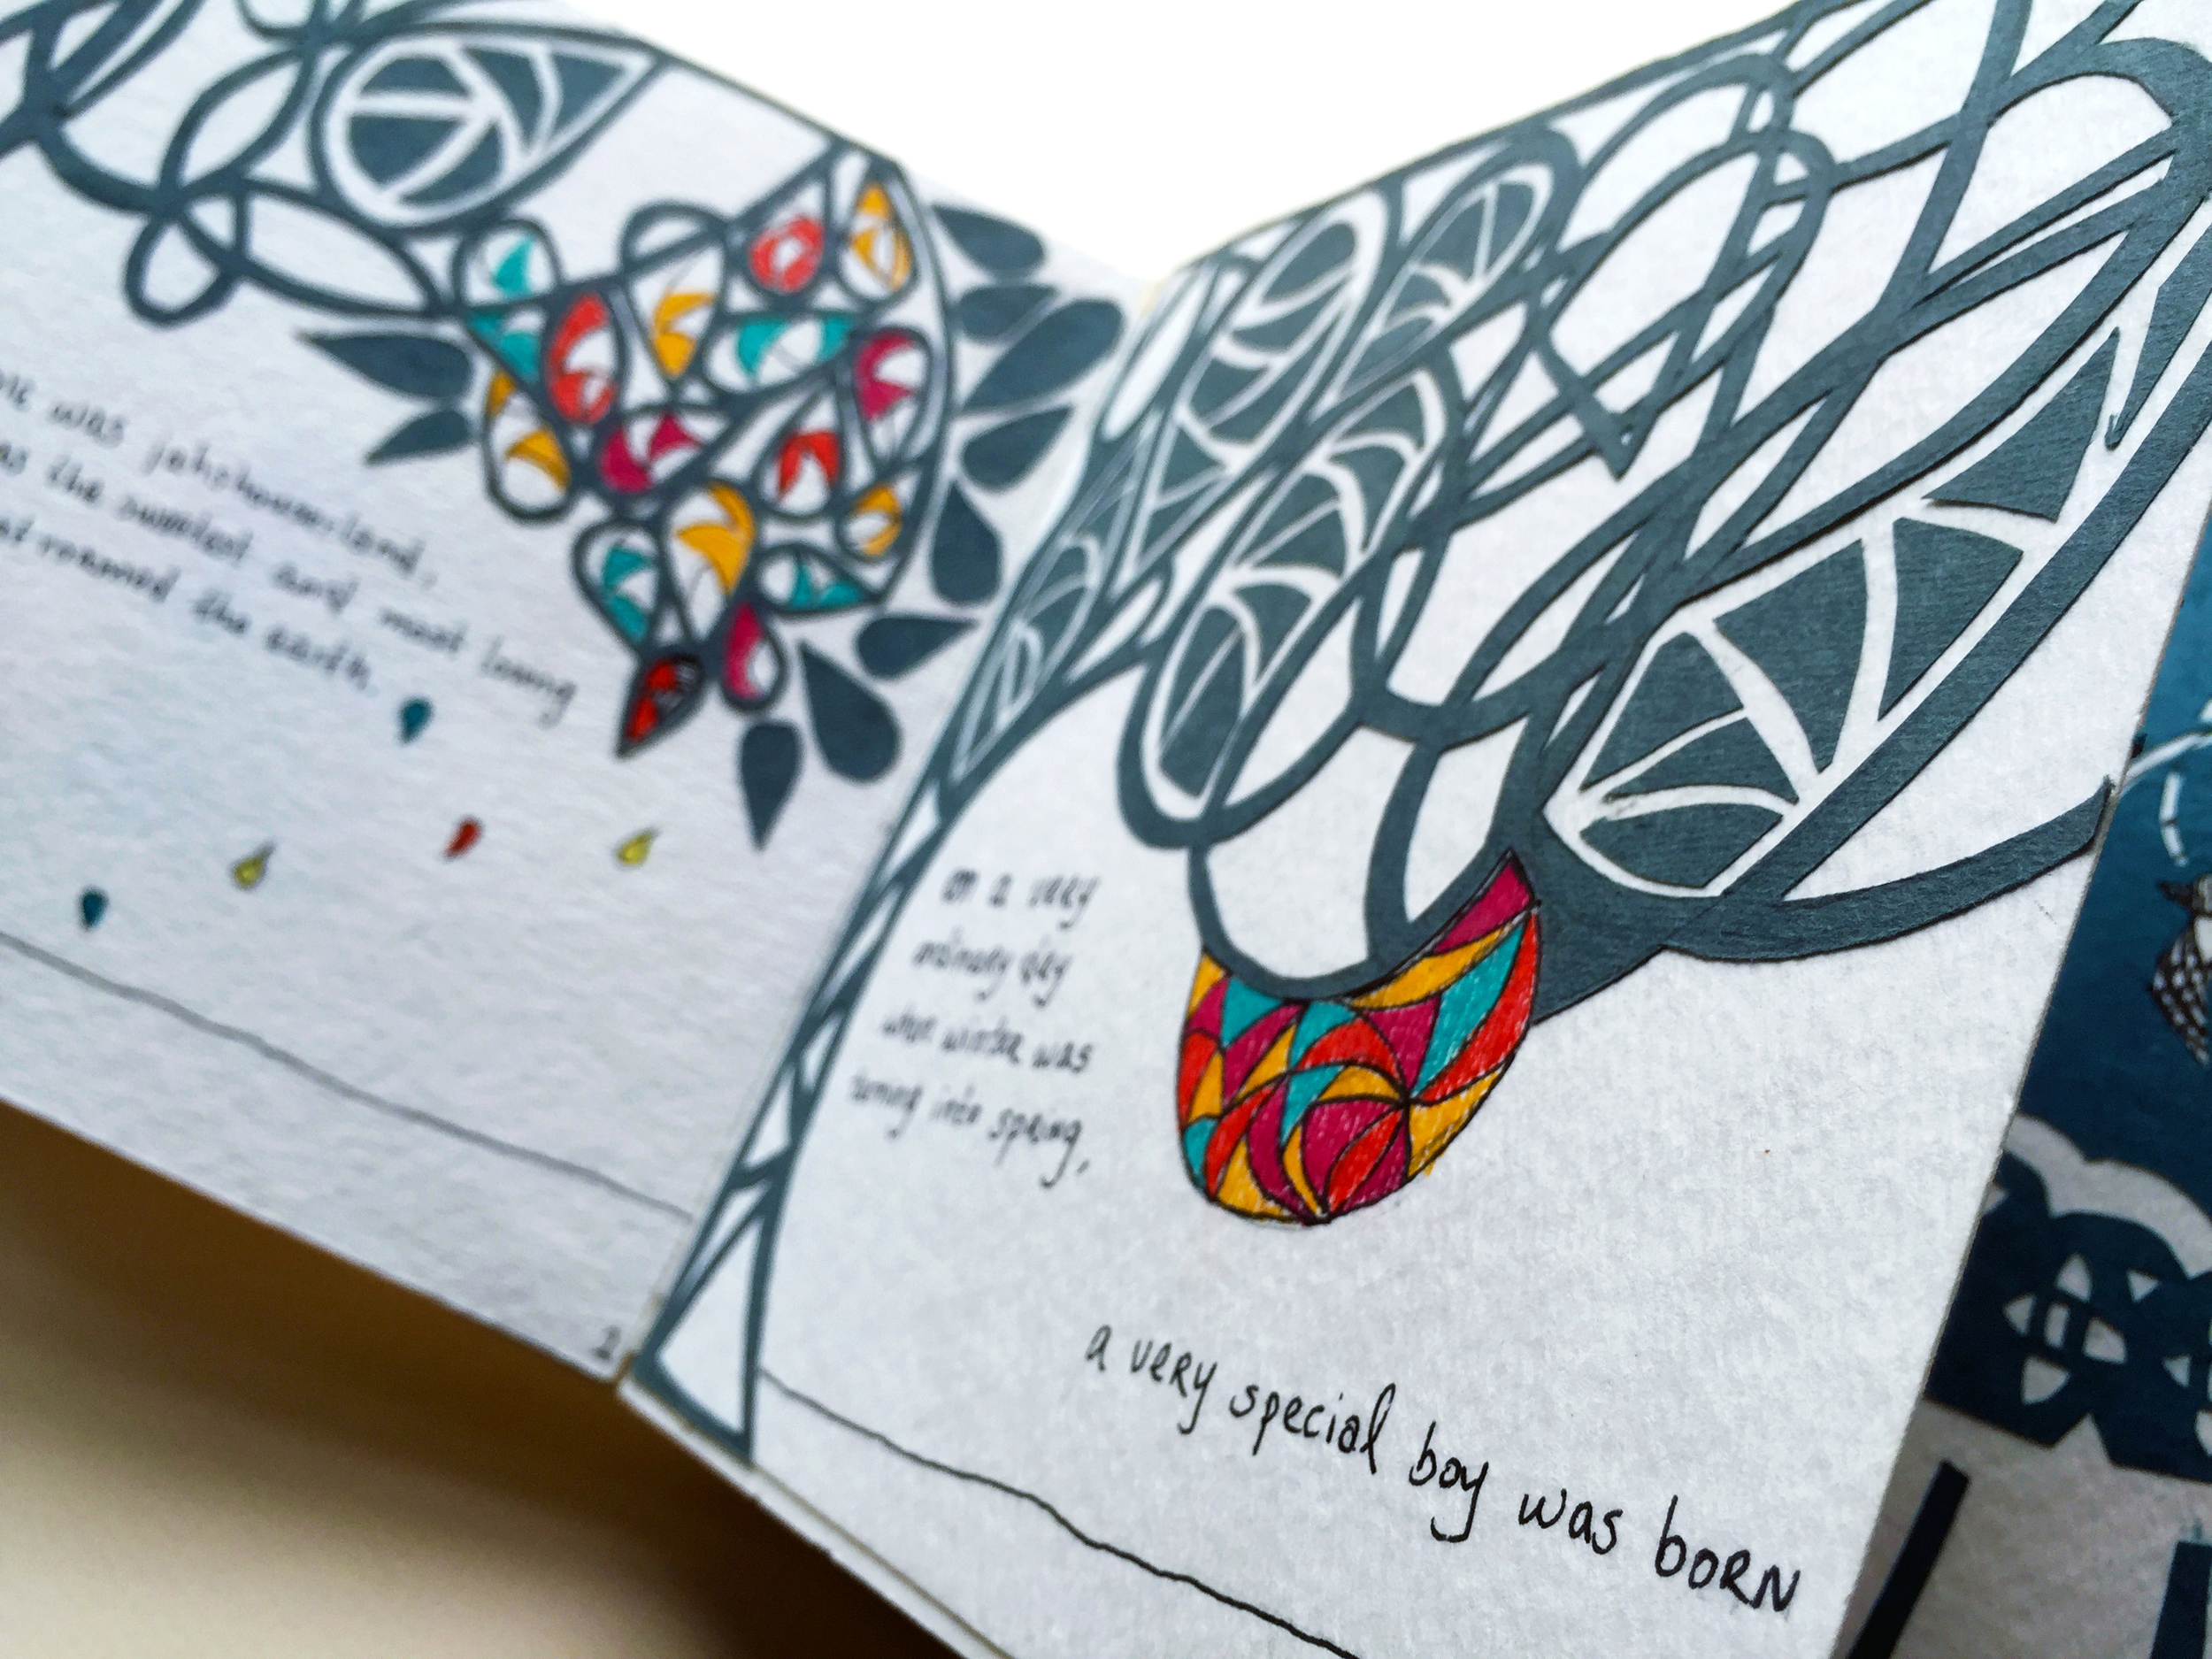 Inside Your Heart - a handmade storybook created with paper cutouts & illustration